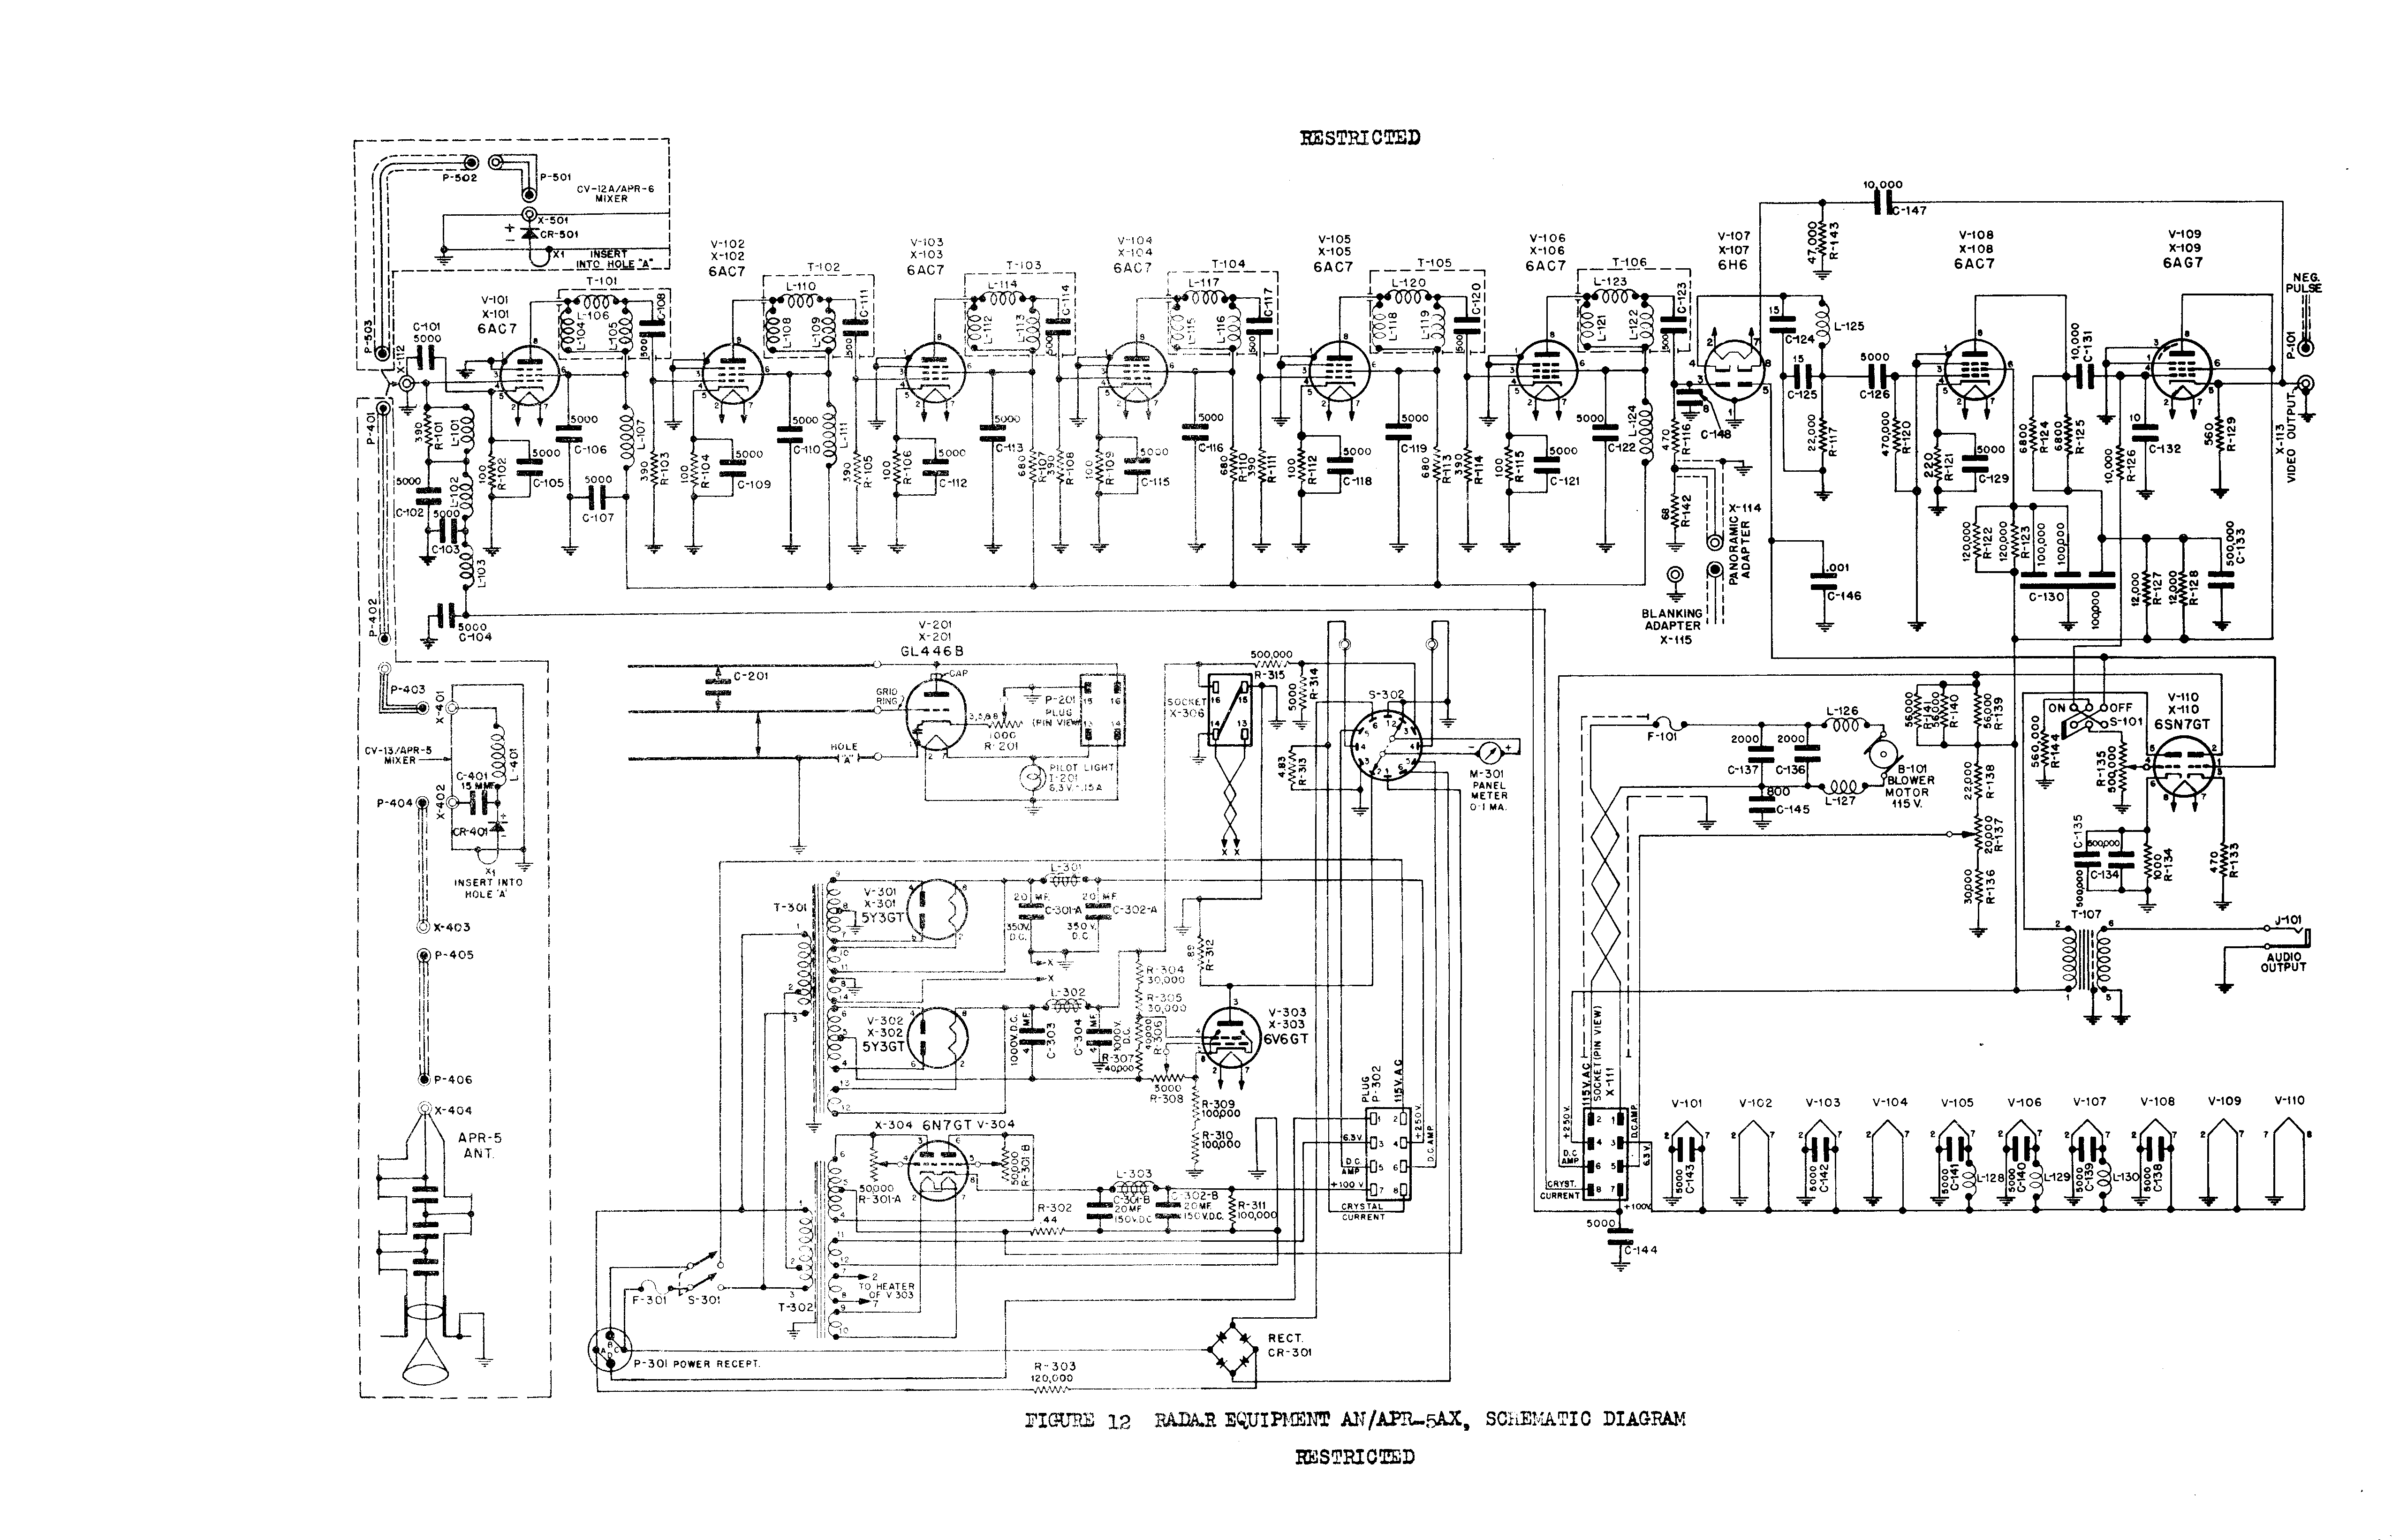 Schematic_APR-5AX.png